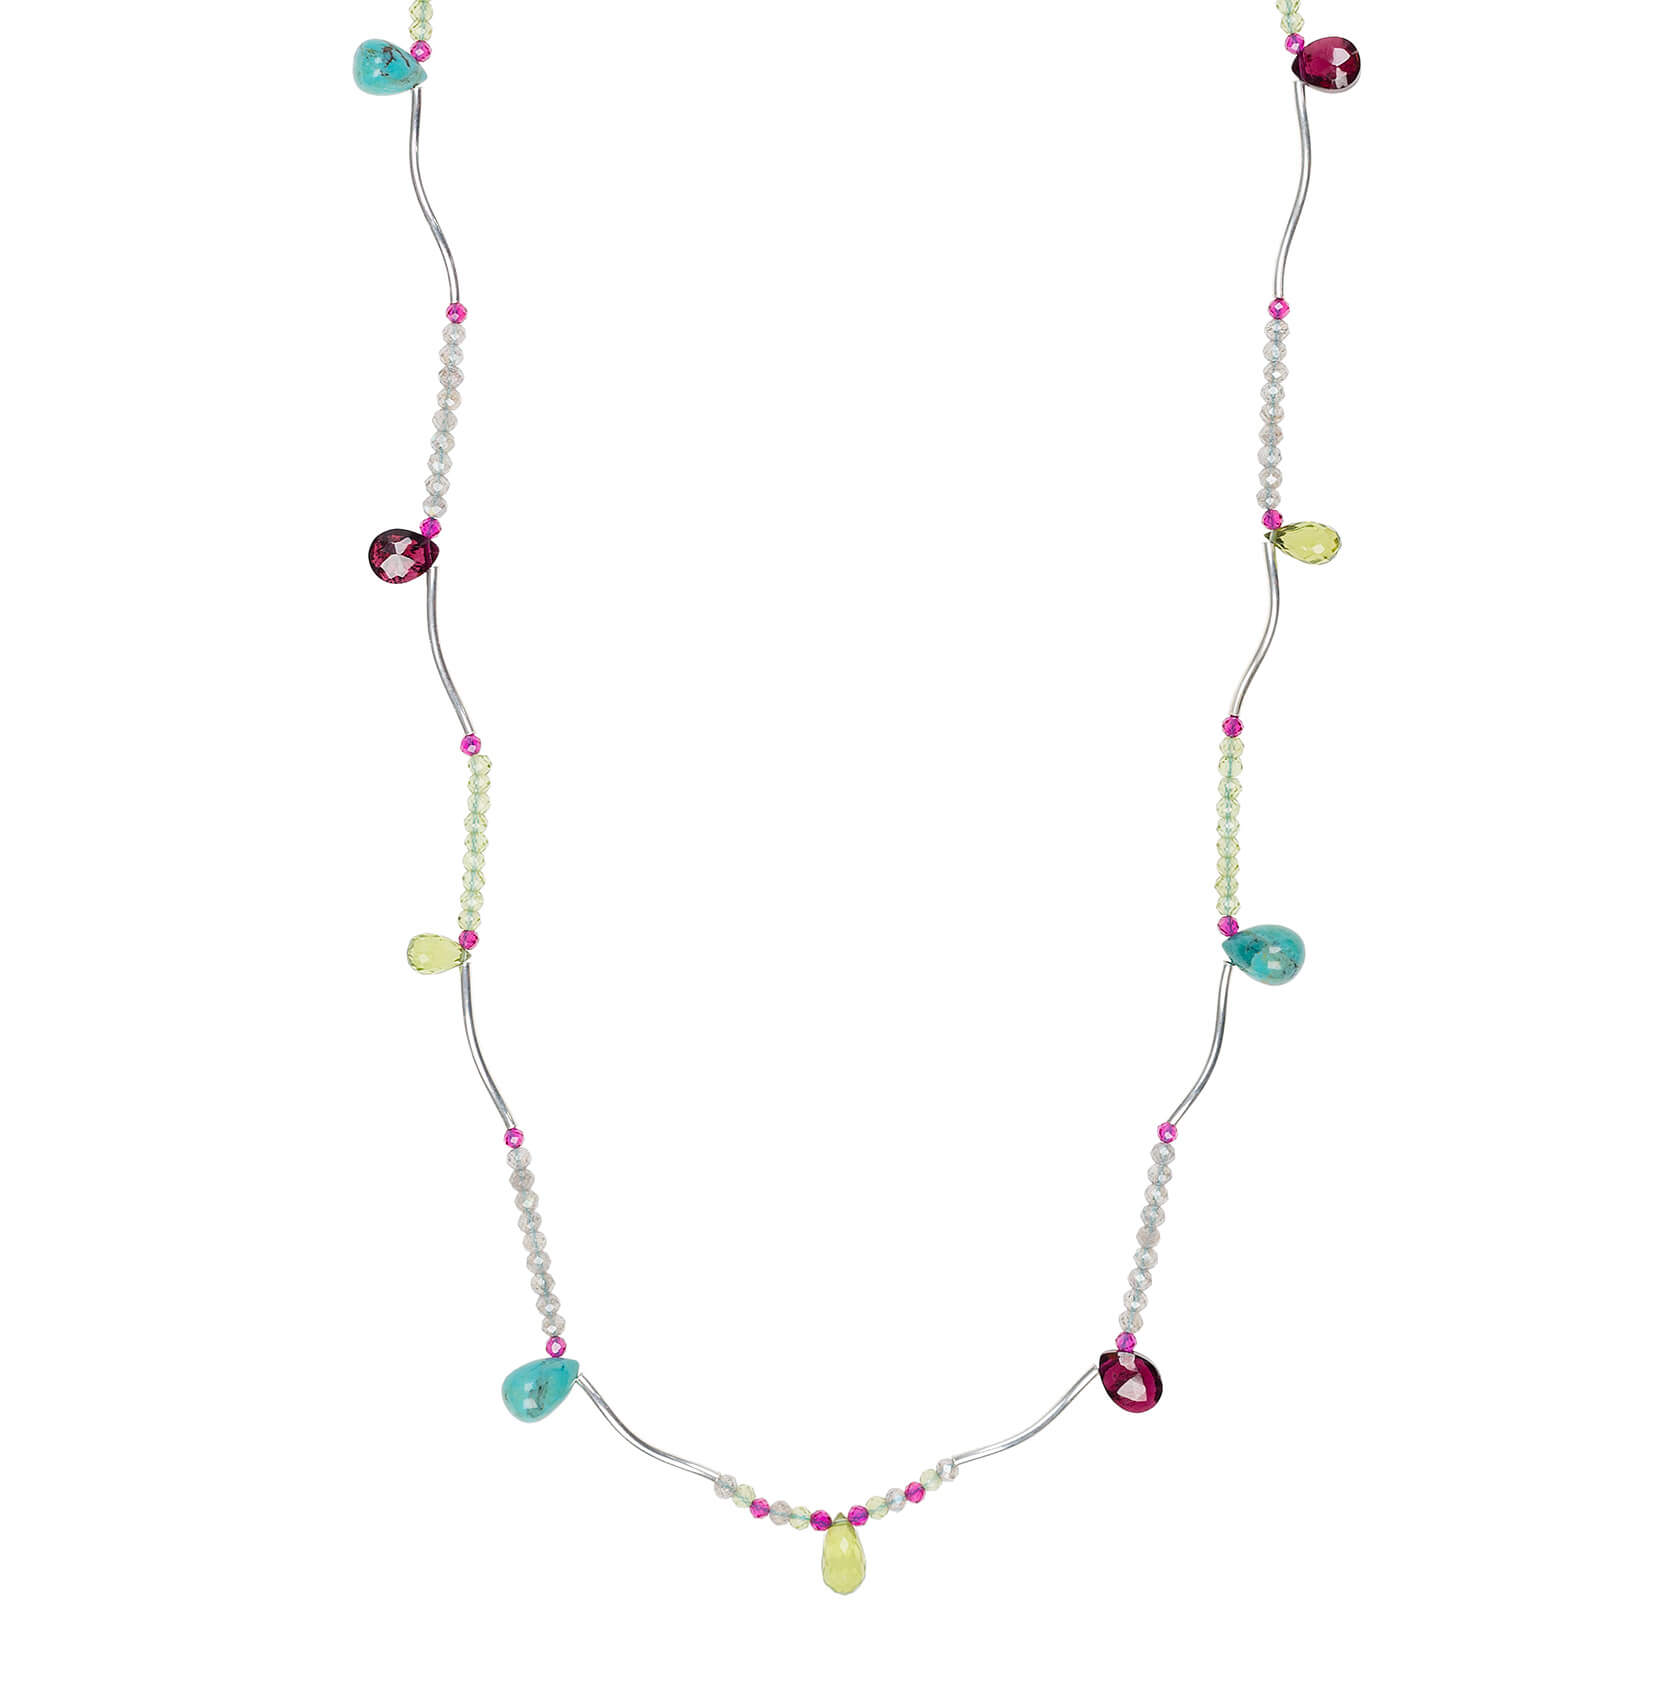 Karashi gemstone drops long necklace